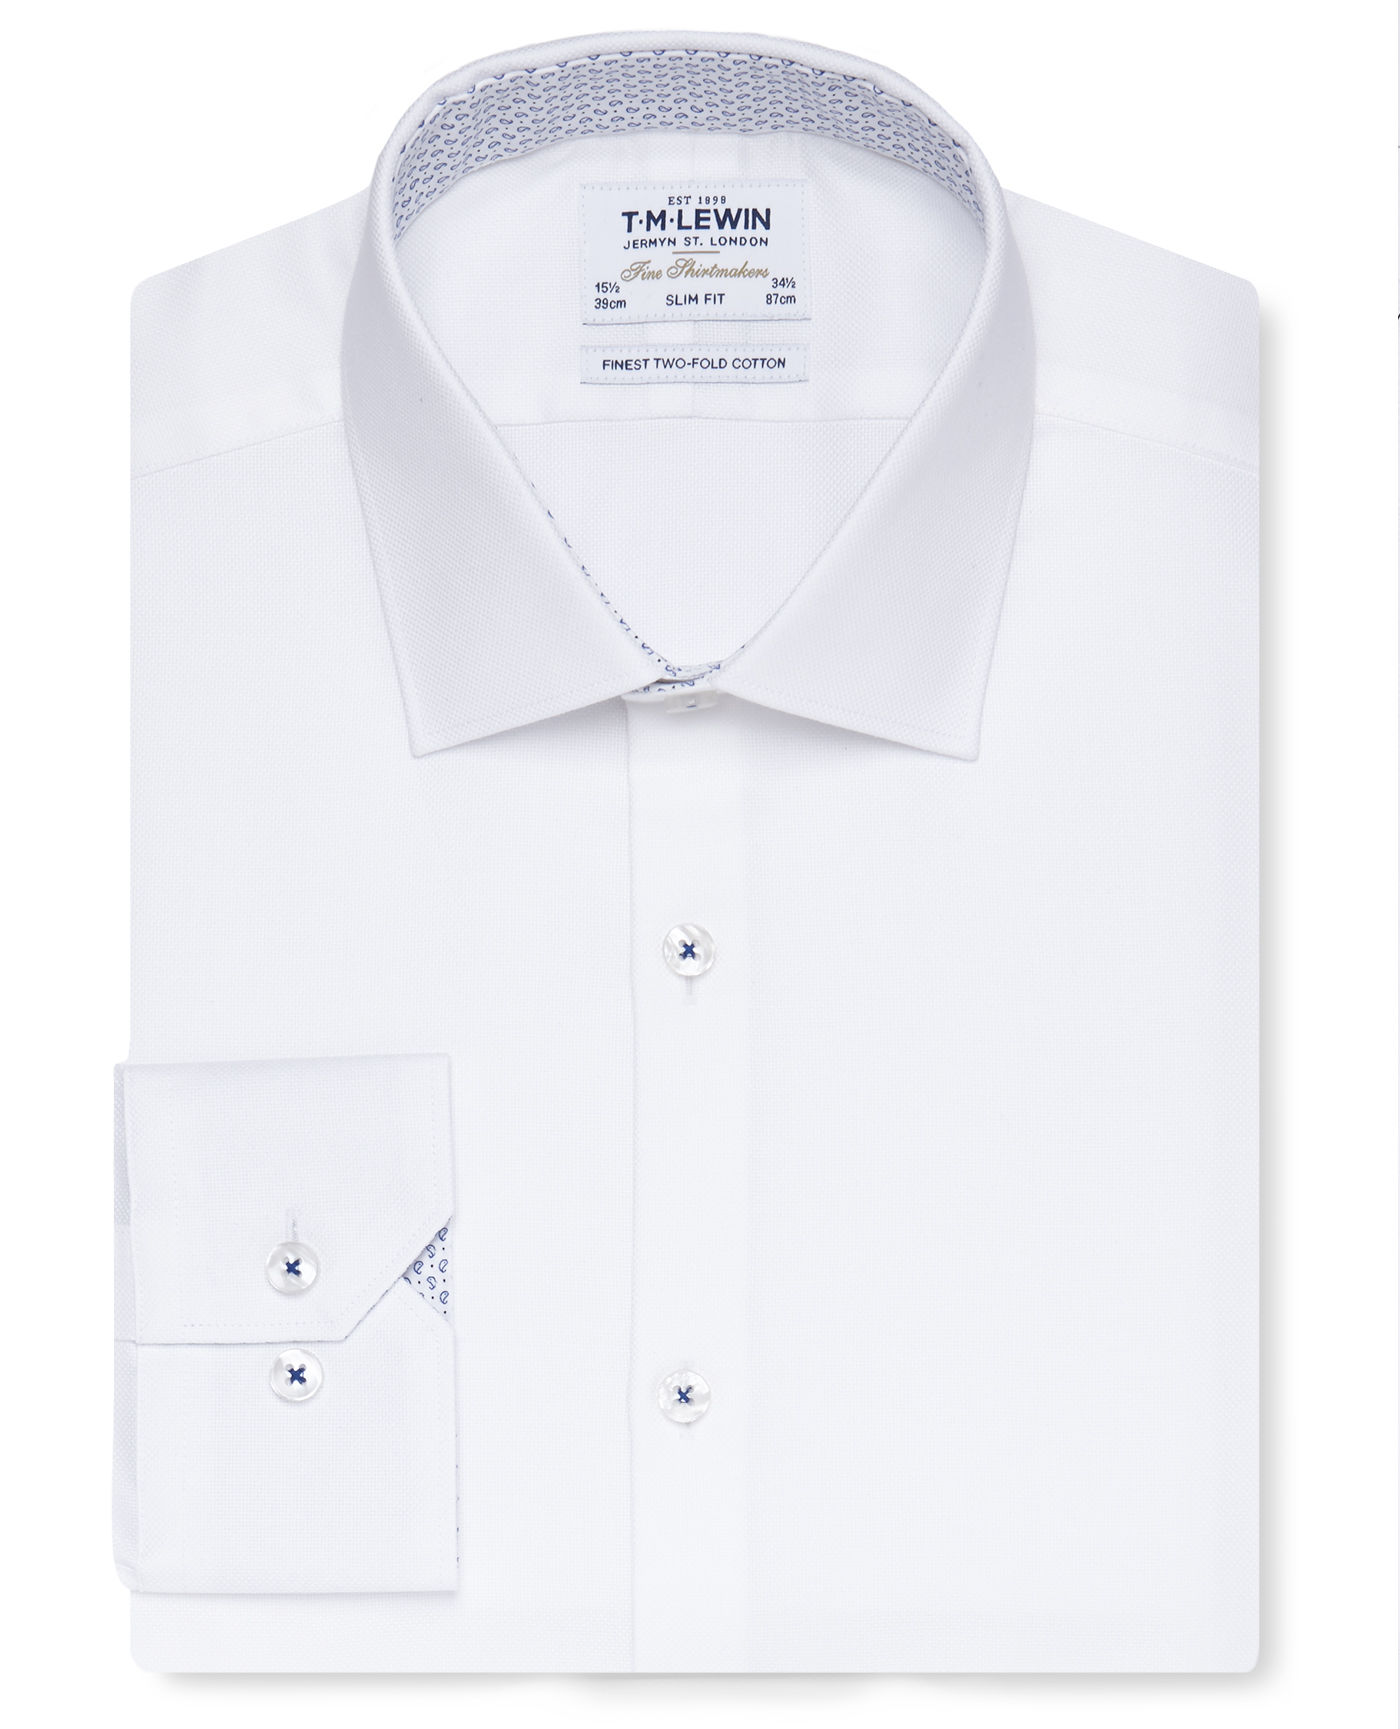 T.M.Lewin Premium Slim Fit White Oxford Shirt with Printed Trim - Button Cuff